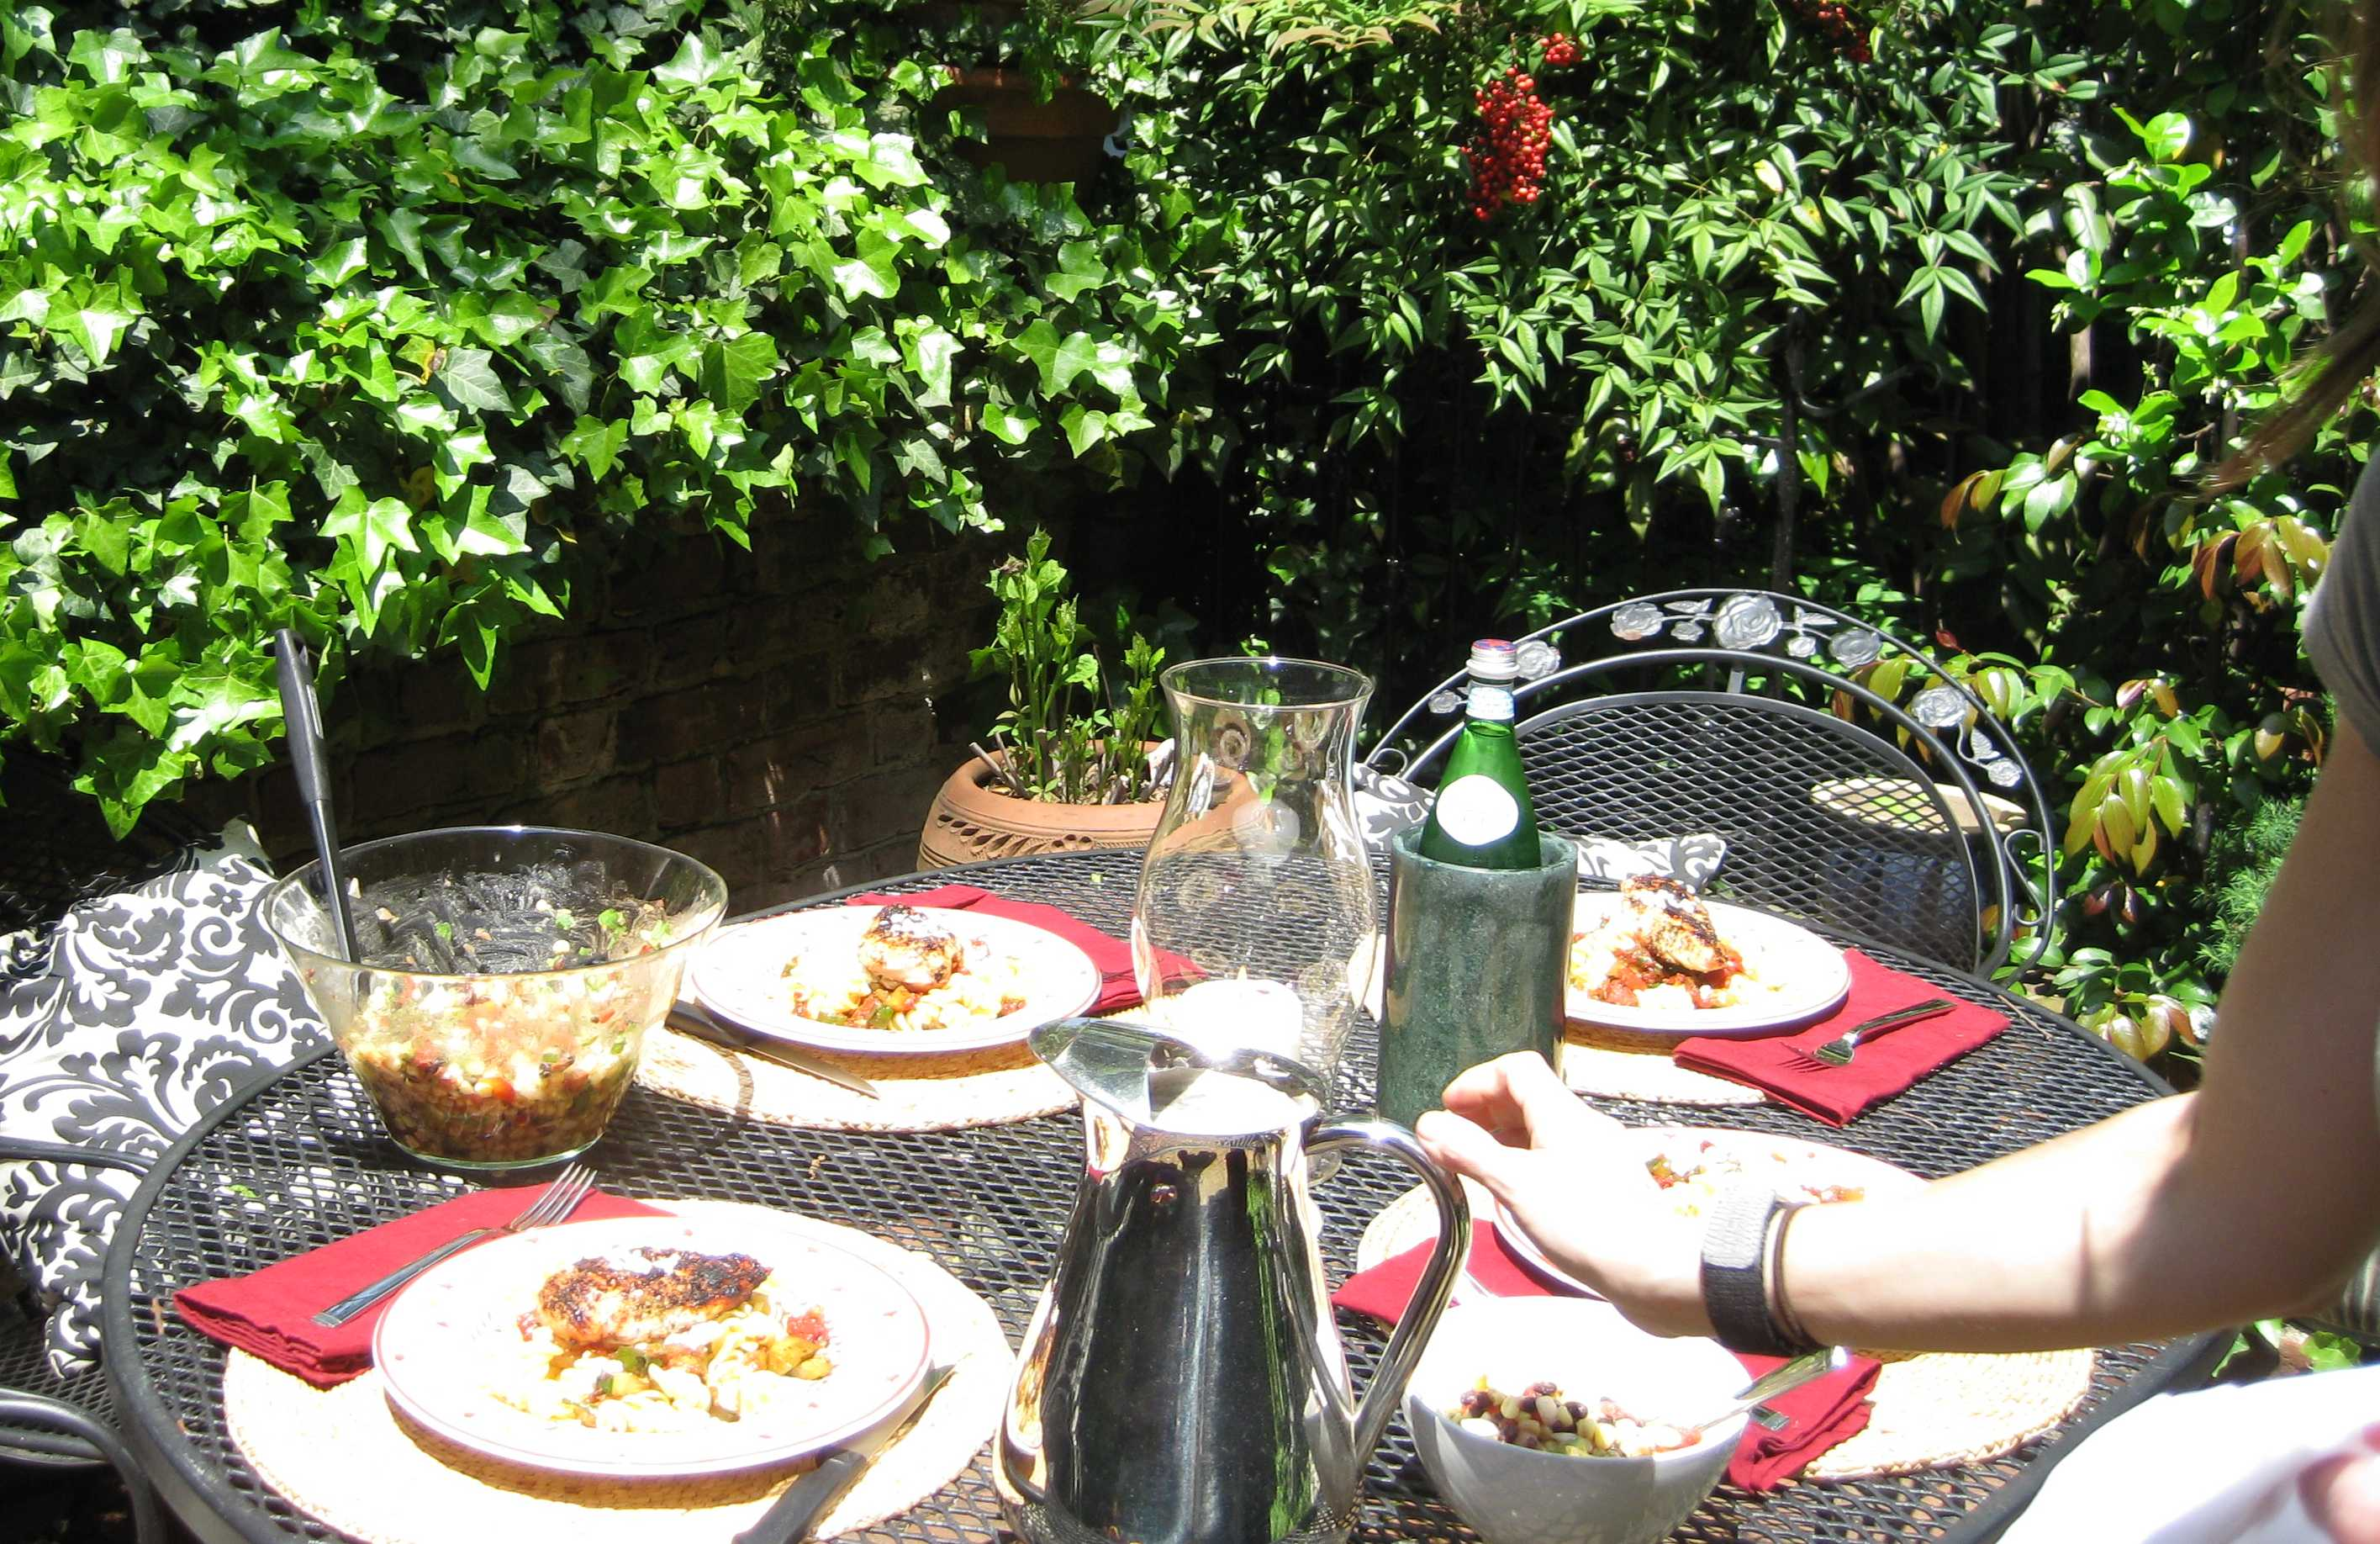 Amazing Outdoor Meal